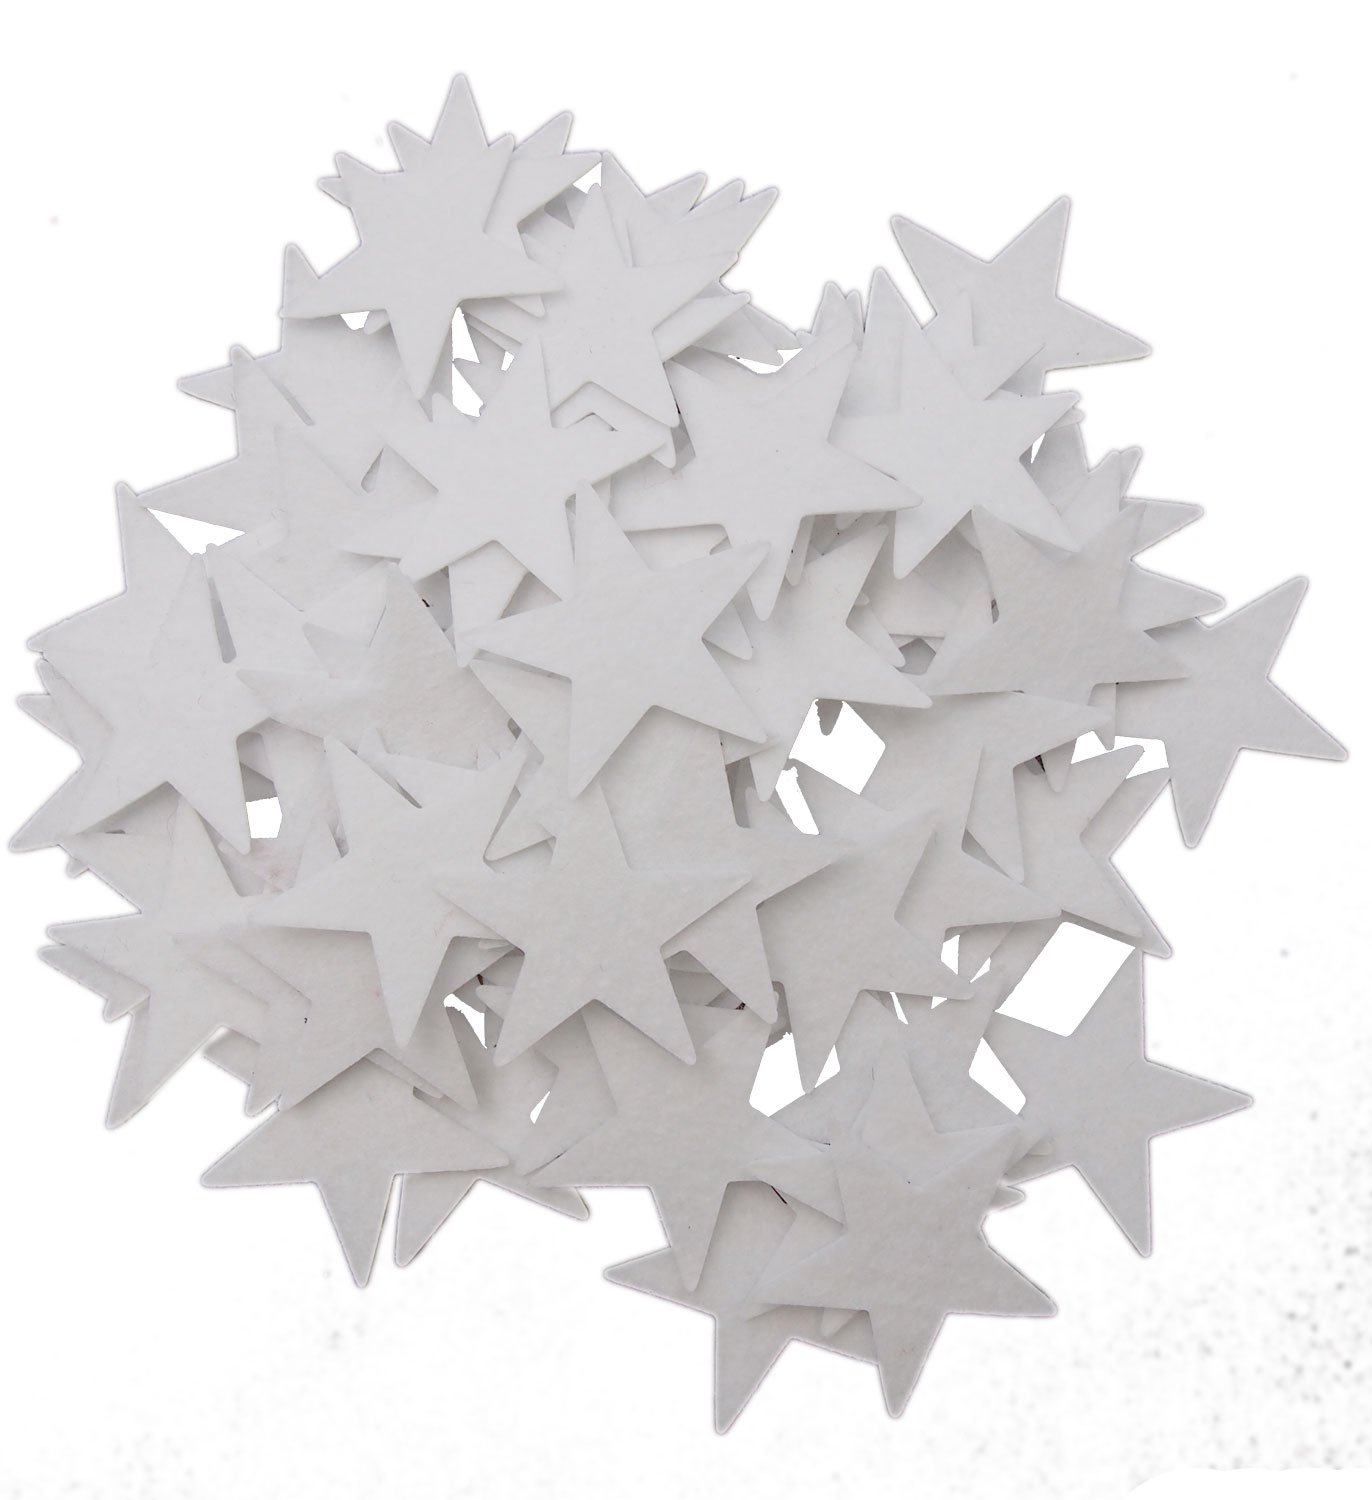 Playfully Ever After 1.5 Inch White 85 pc Felt Star Stickers PEA-FELT-STKYSTAR-85White